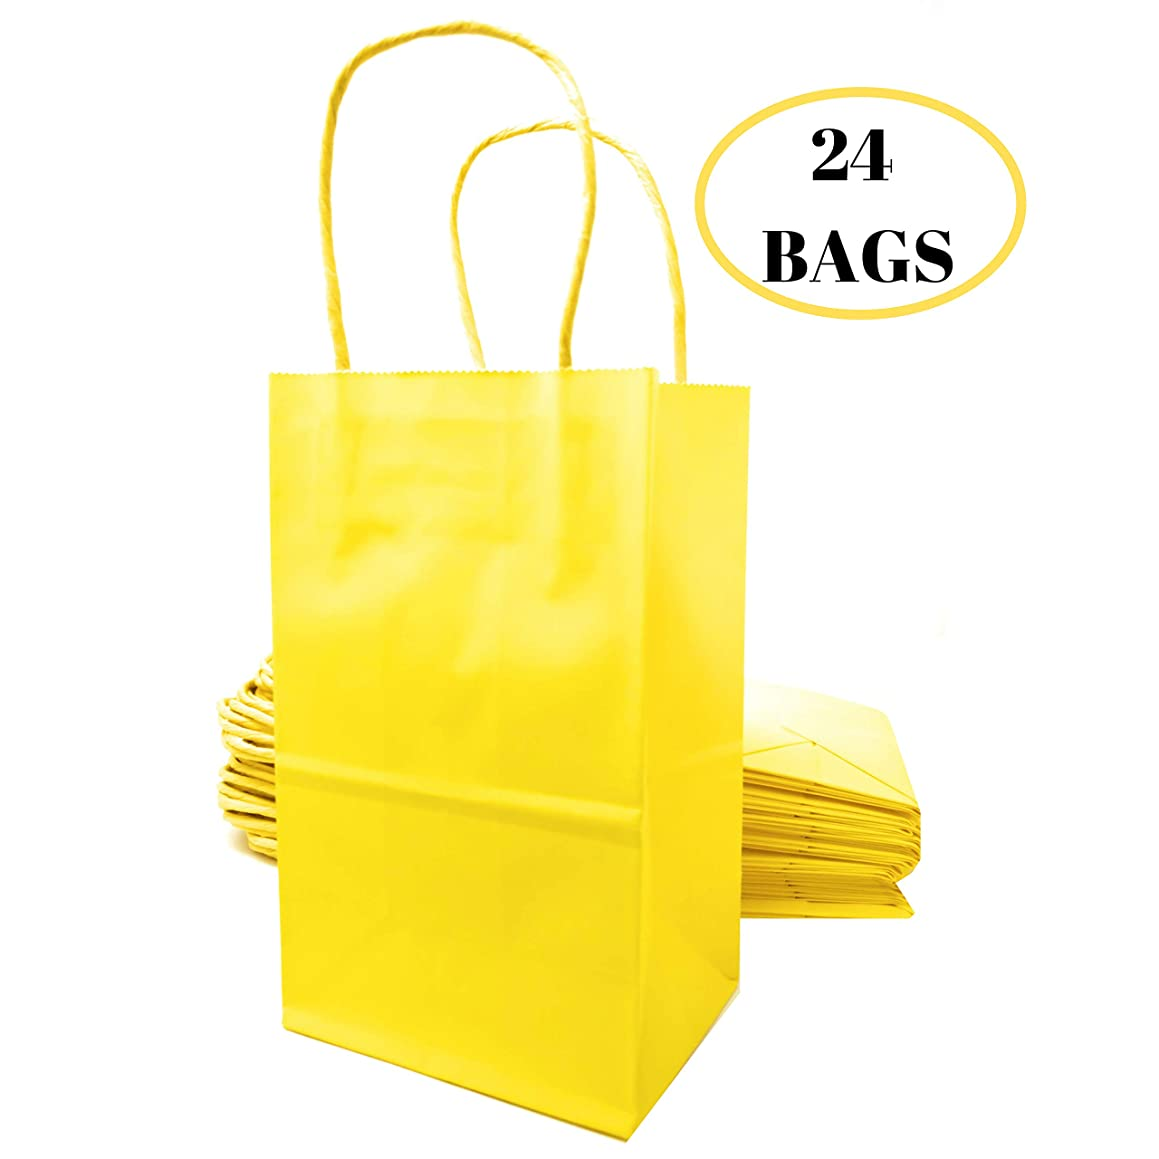 """Kelkaa Party Kraft Paper Bags – 24pcs 5.25X3.5X8.5"""" Gift Bags with Handles for Birthday, Wedding Party Favors, Bachelorette Party, Paper Tote Bags, Party Themes - Small Yellow"""